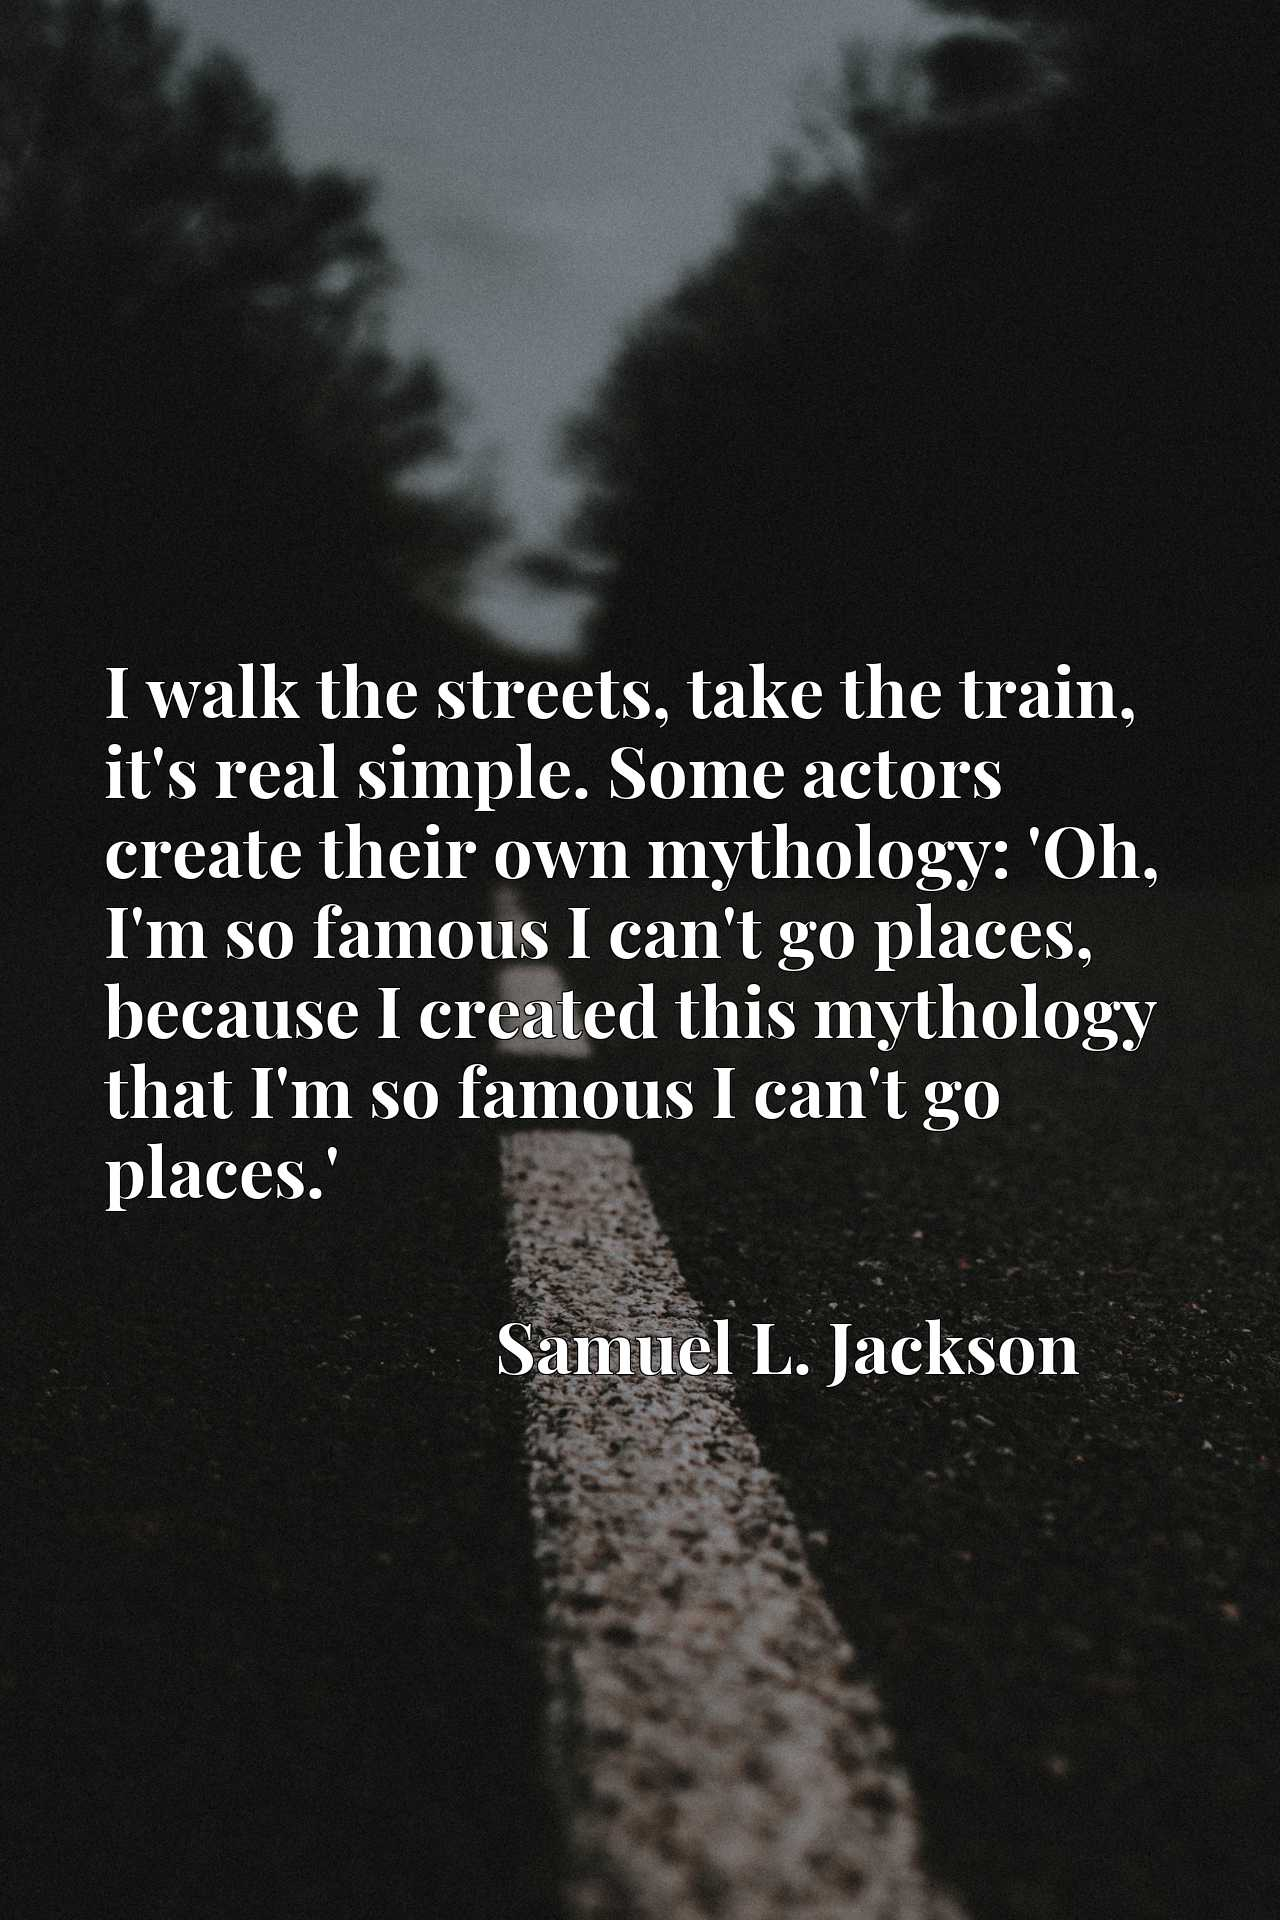 I walk the streets, take the train, it's real simple. Some actors create their own mythology: 'Oh, I'm so famous I can't go places, because I created this mythology that I'm so famous I can't go places.'